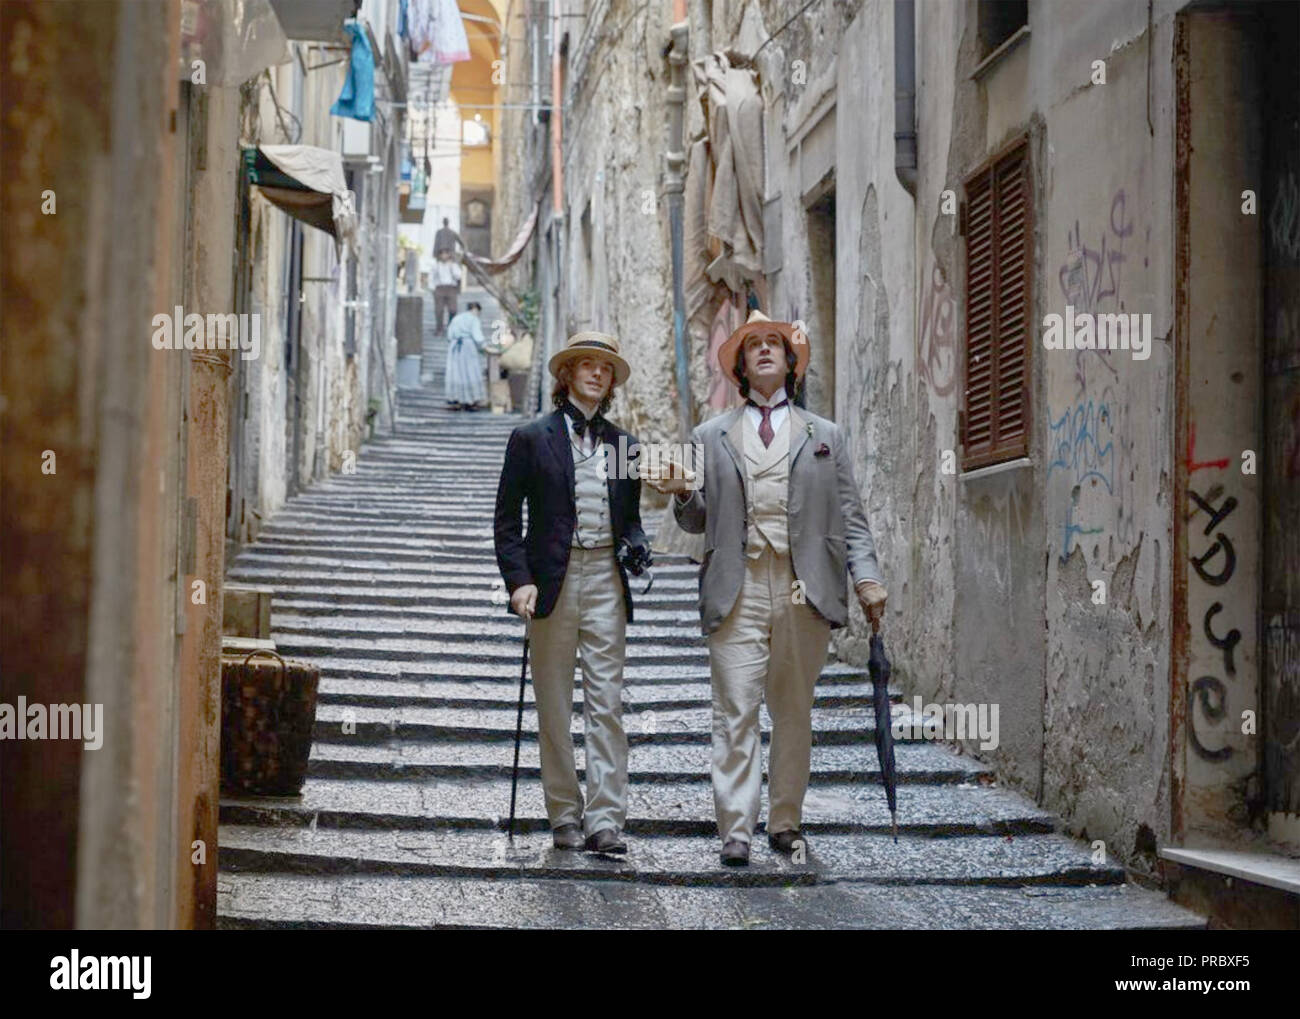 THE HAPPY PRINCE 2018 Sony Pictures Classic film with Rupert Everett as Oscar Wilde at right and Edwin Thomas as Robbie Ross - Stock Image